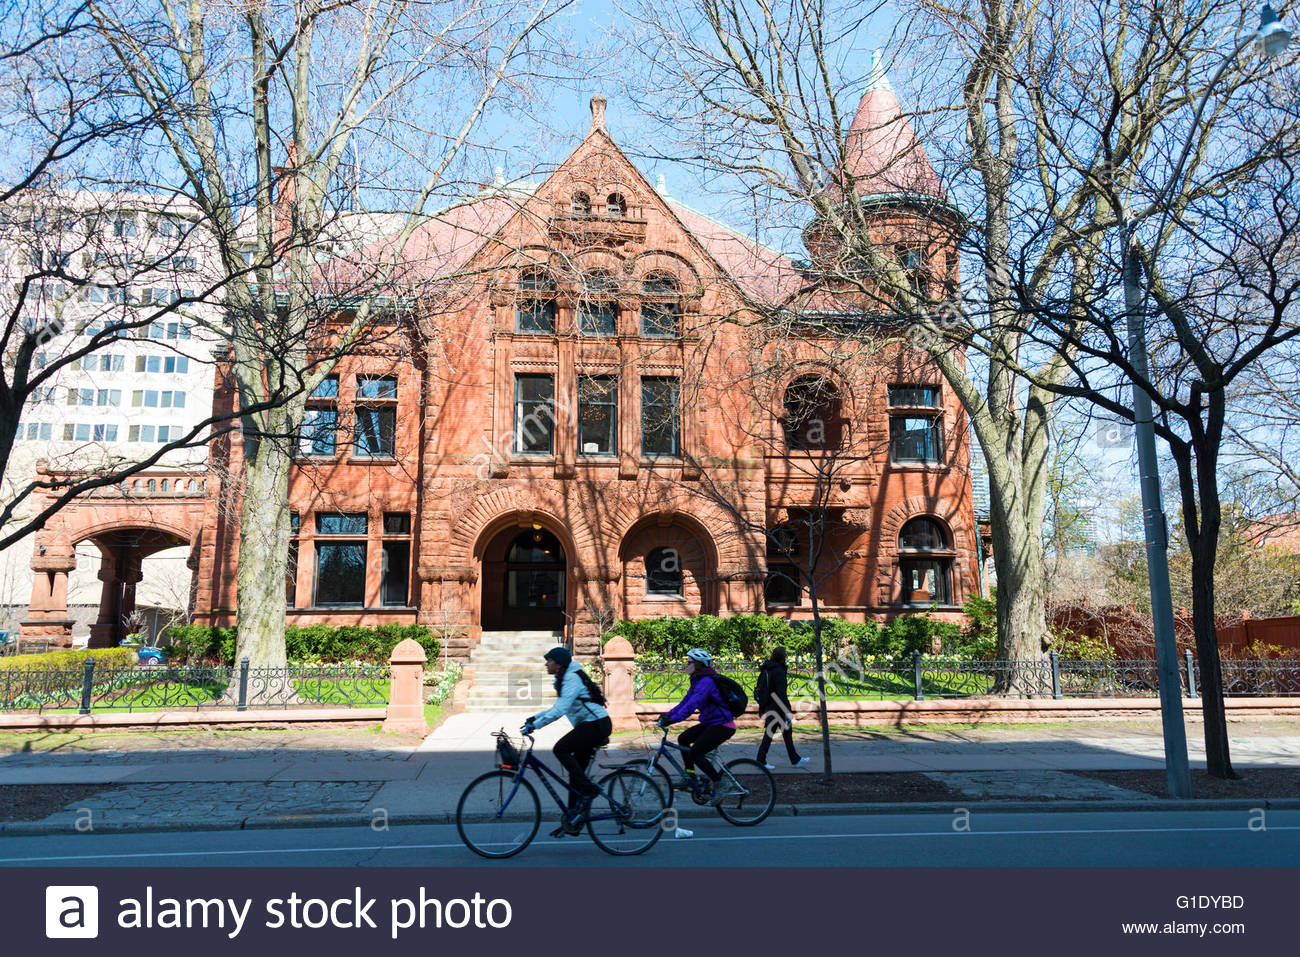 Gooderham house currently York Club. The landmark is a Romanesque Revival architecture in red stone. The York Club - Stock Image